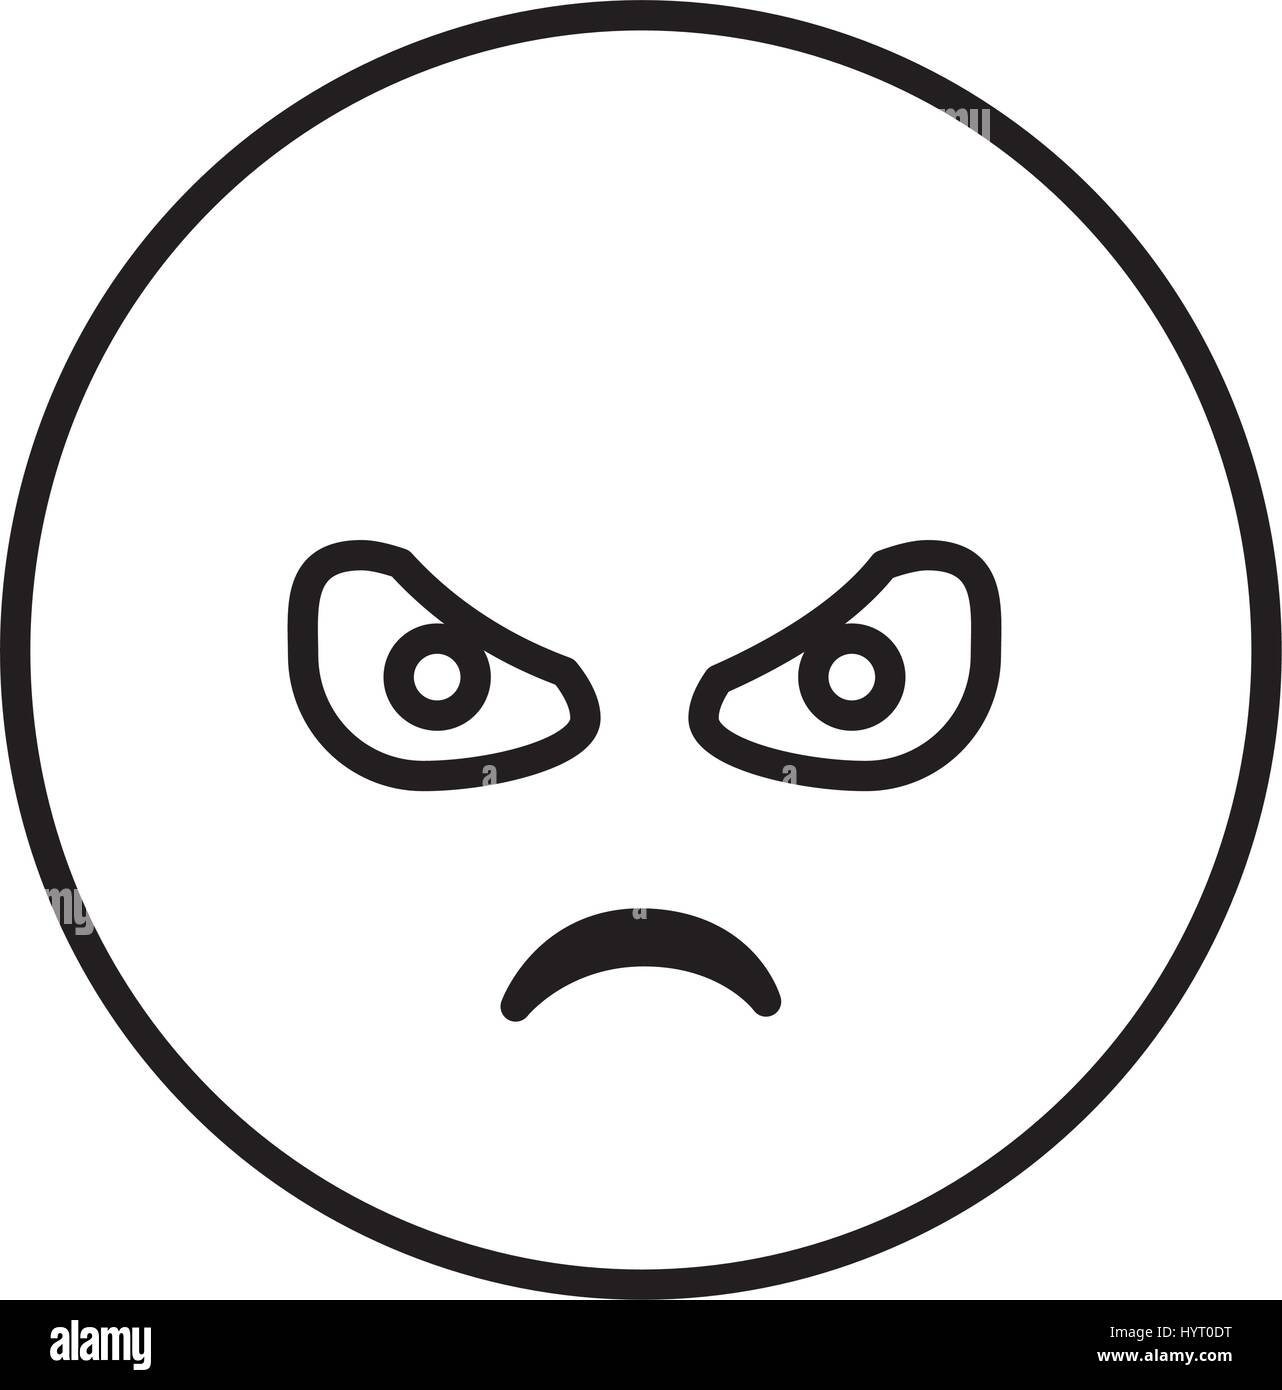 silhouette emoticon face furious expression - Stock Image